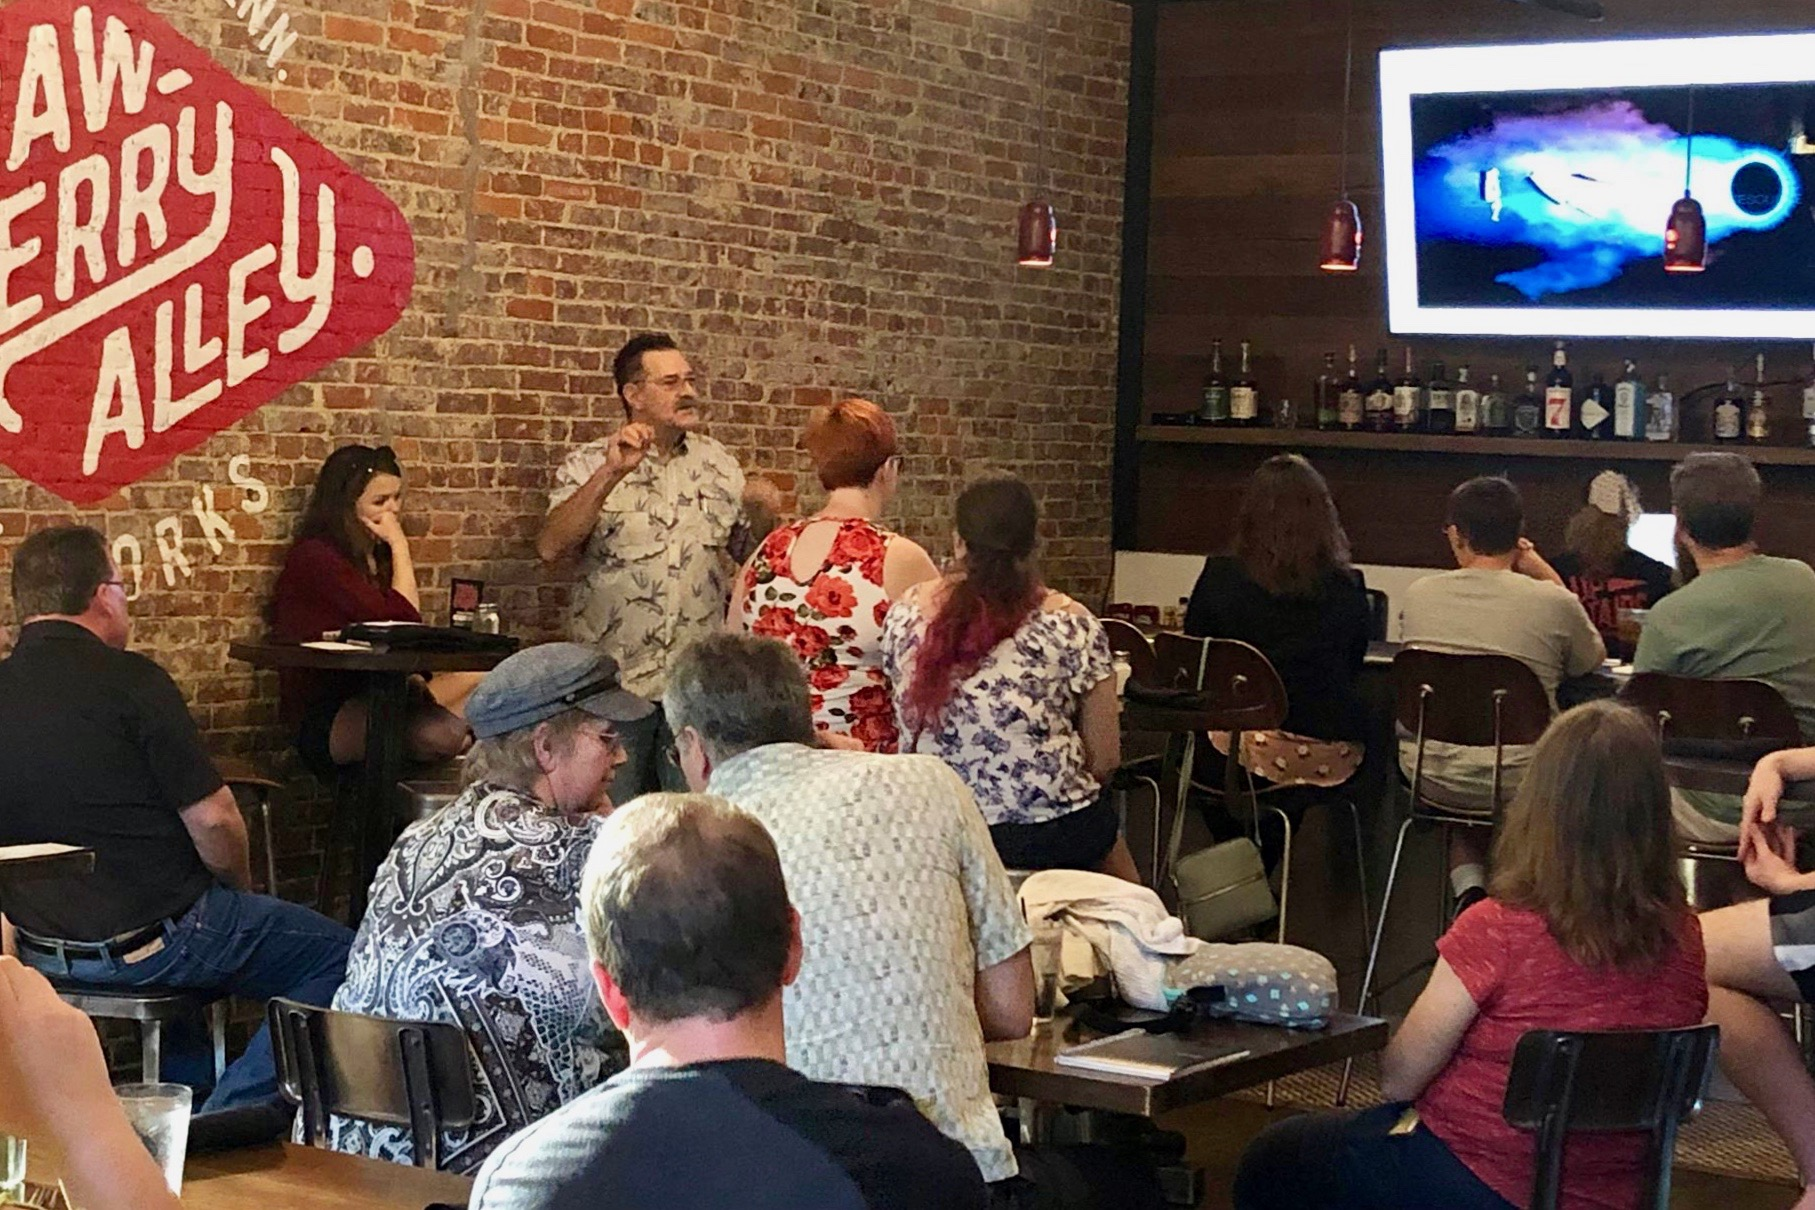 Austin Peay State University kicked off its inaugural Science on Tap – a monthly lecture series that unites two great things, science and local brews – at Strawberry Alley Ale Works Tuesday, Sept. 3.